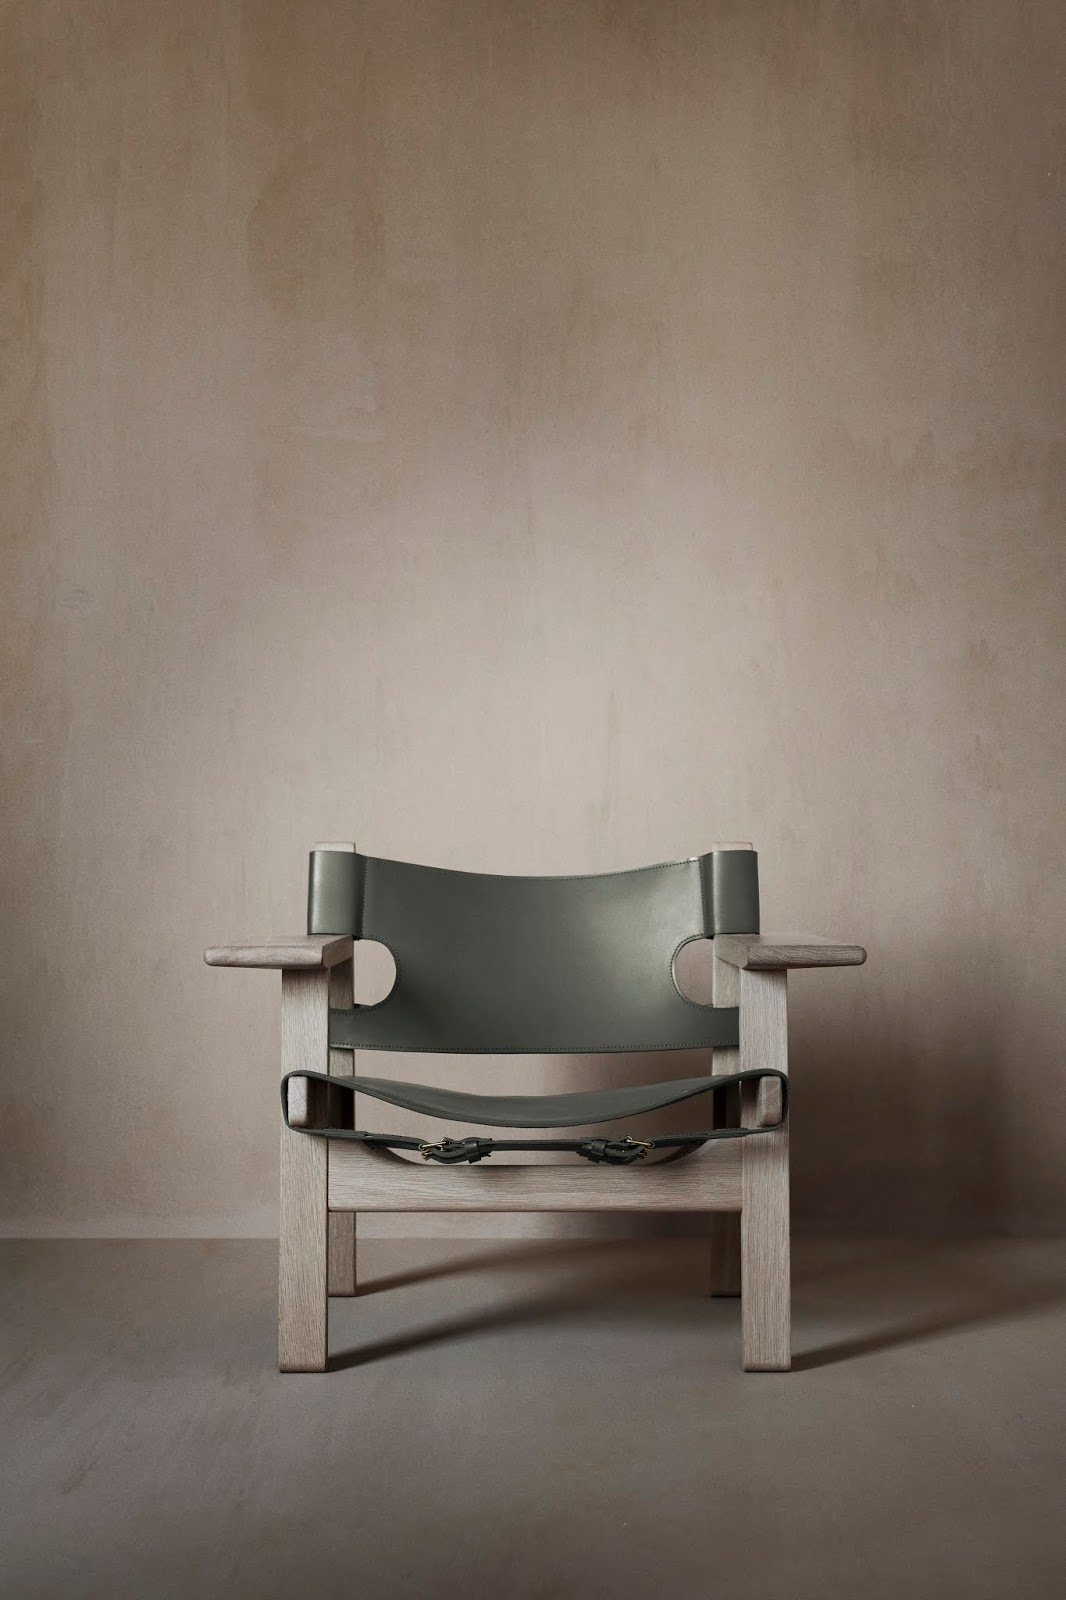 60 Years of the Spanish Chair